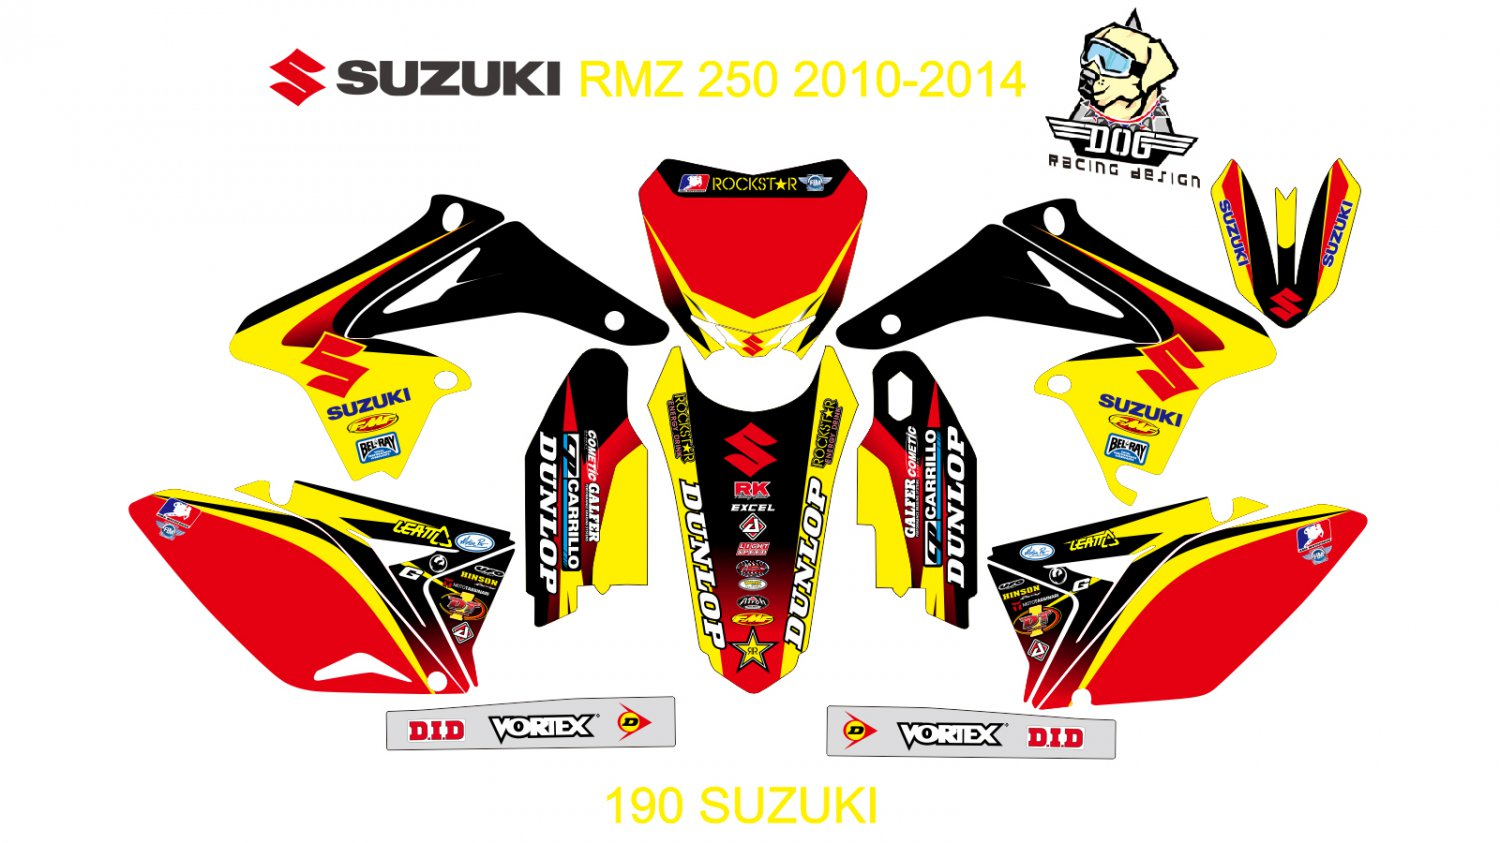 SUZUKI RMZ 250 2010-2014 GRAPHIC DECAL KIT CODE.190